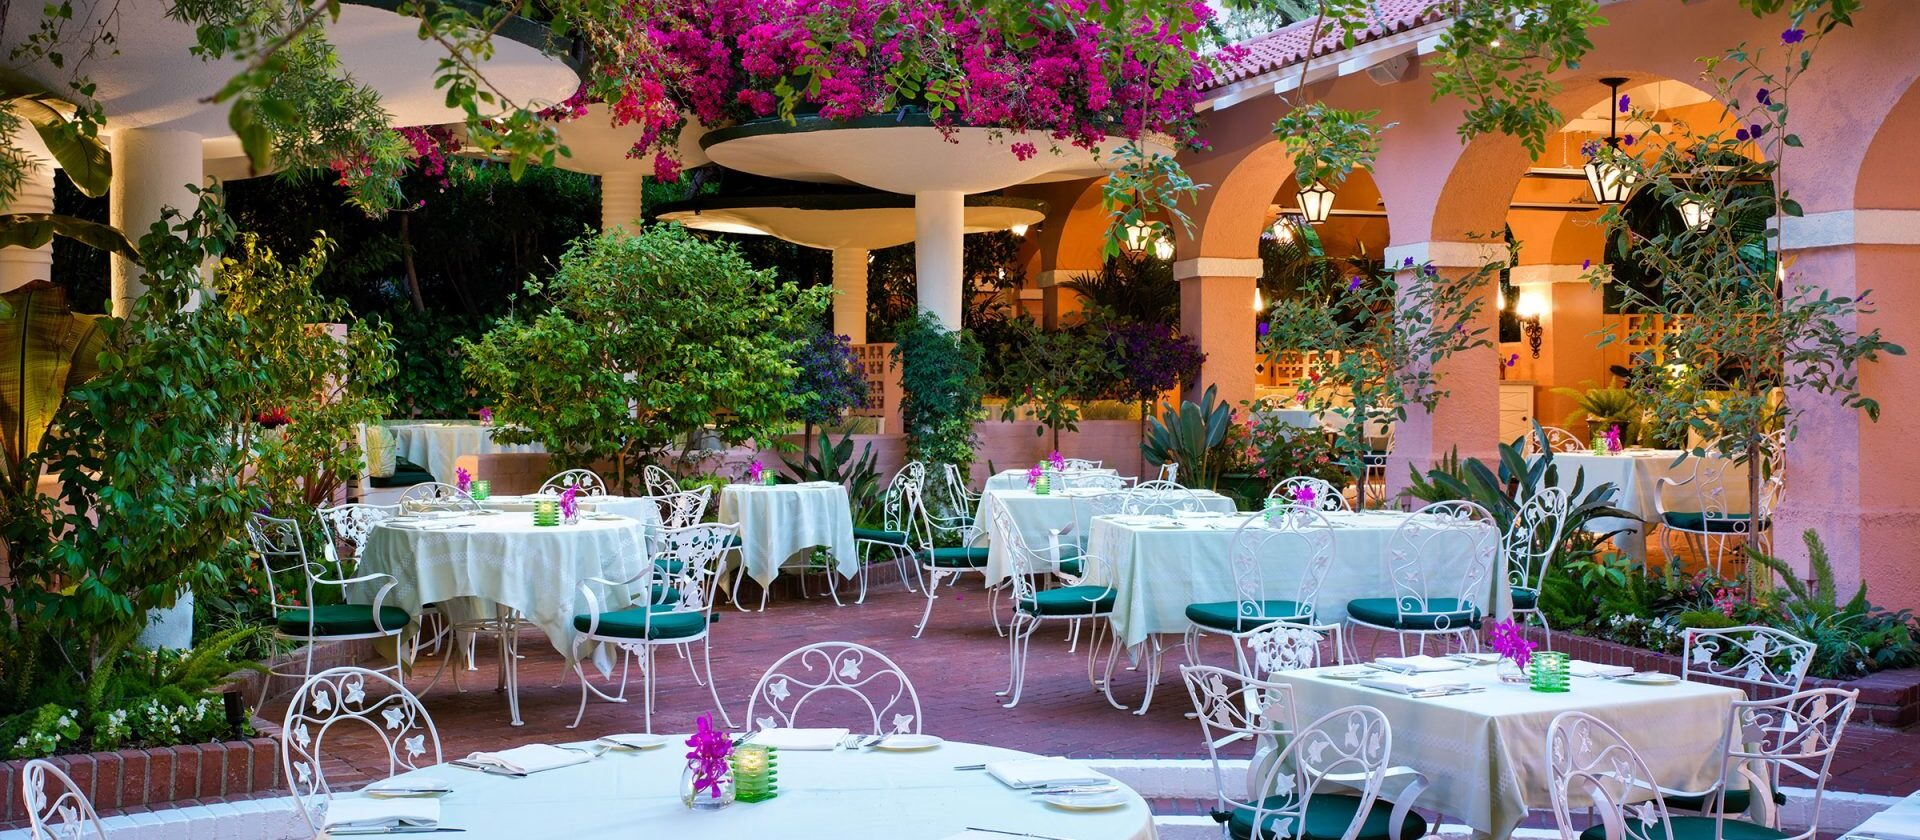 Beverly Hills Hotel polo lounge patio area